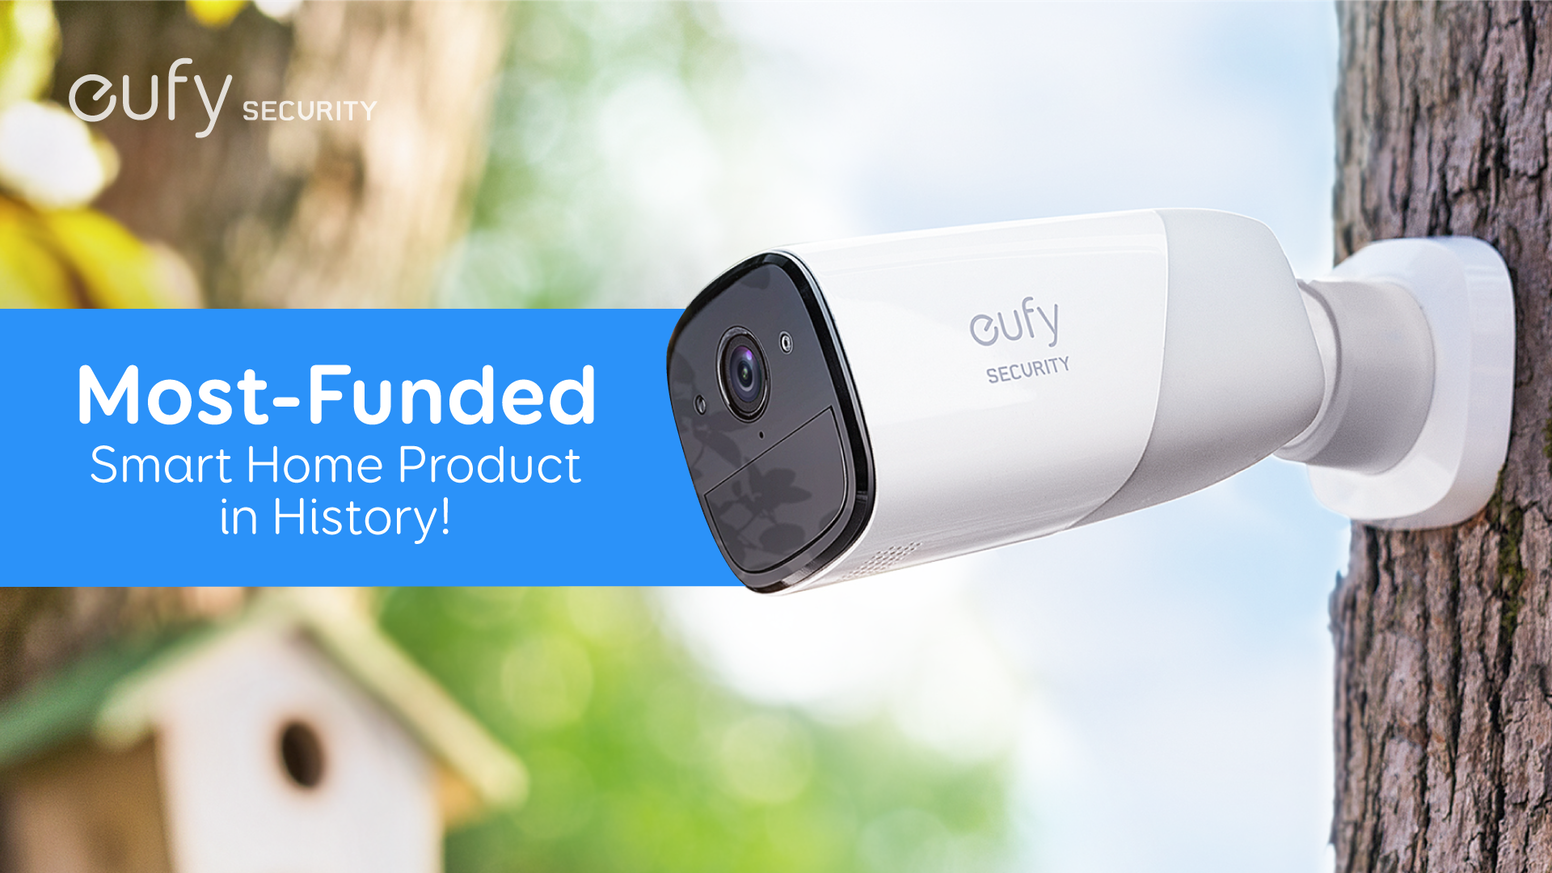 Face-Recognizing Alerts | Motion Detection | 1080p Full HD | No Monthly Fee | Free Local Storage | Night Vision | Weatherproof (IP66)